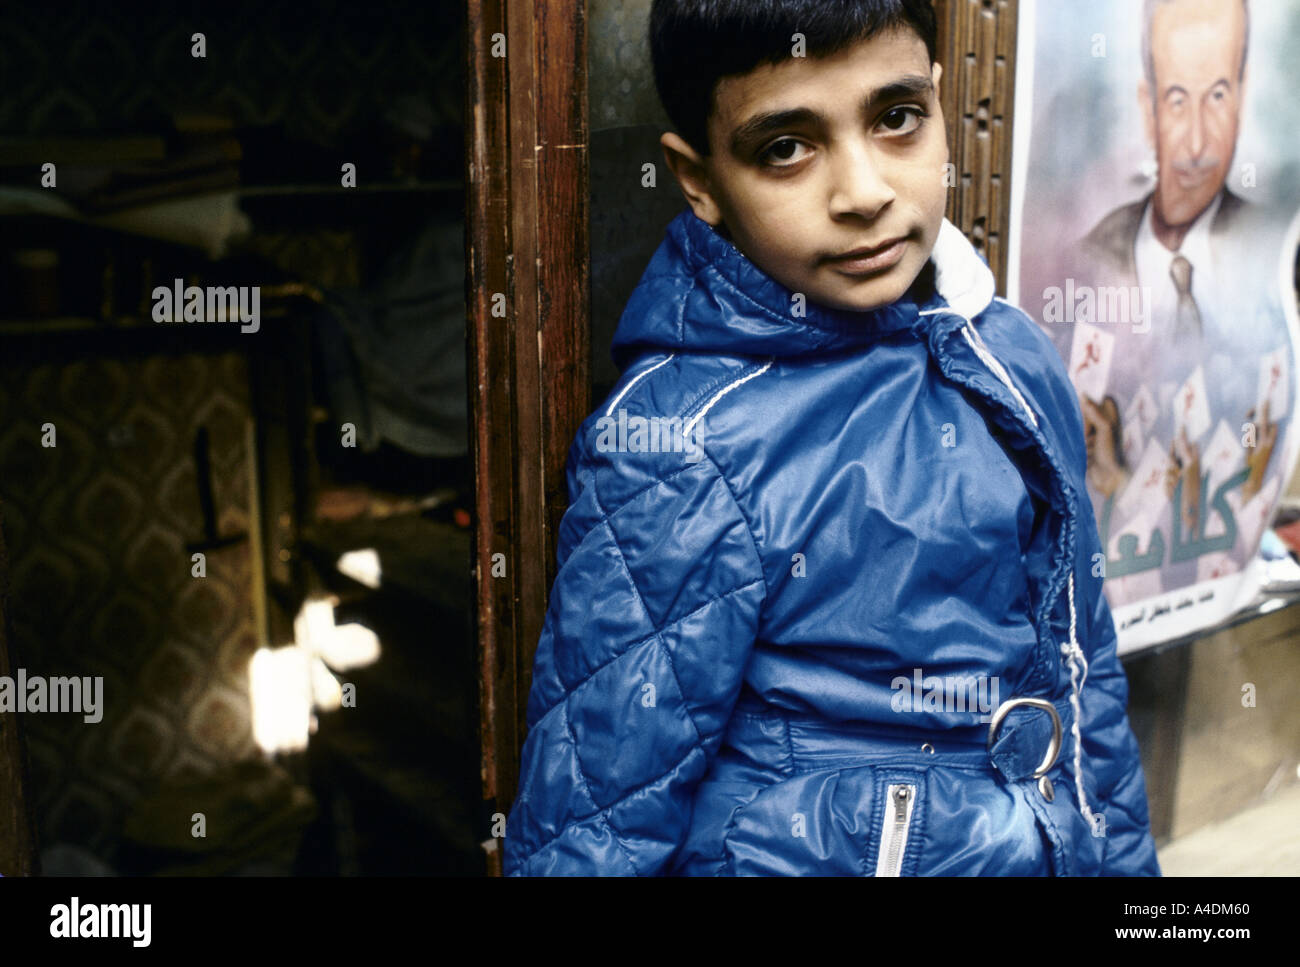 A Young Jewish Boy In The Ghetto Damascus Syria